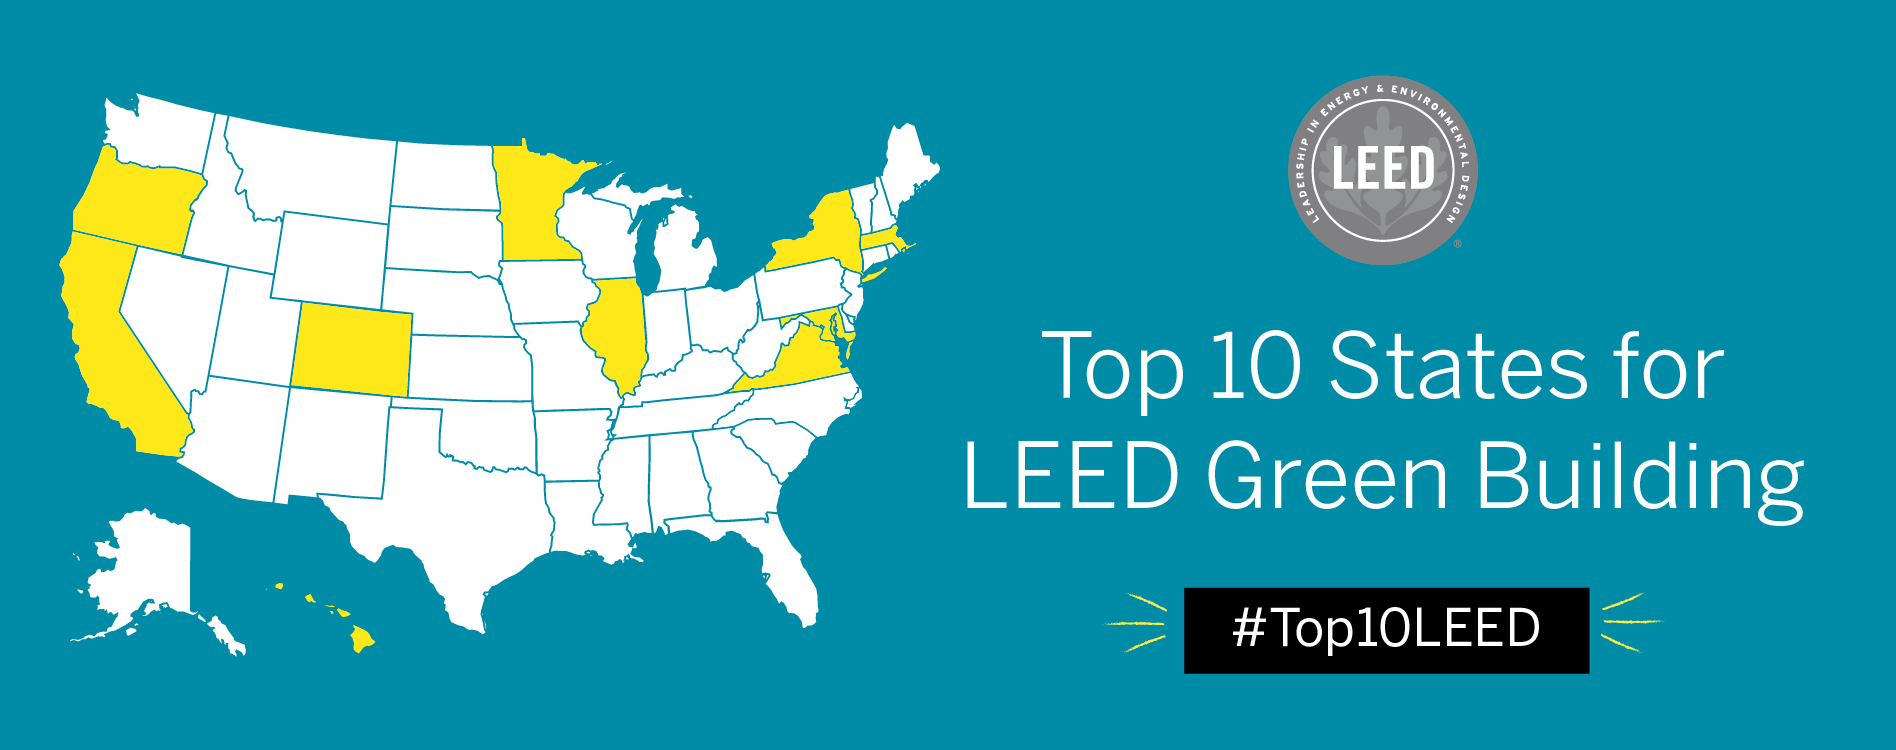 Usgbc Releases The Top 10 States For Leed Recognizing Leaders Committed To More Sustainable And Resilient Buildings Cities And Communities U S Green Building Council